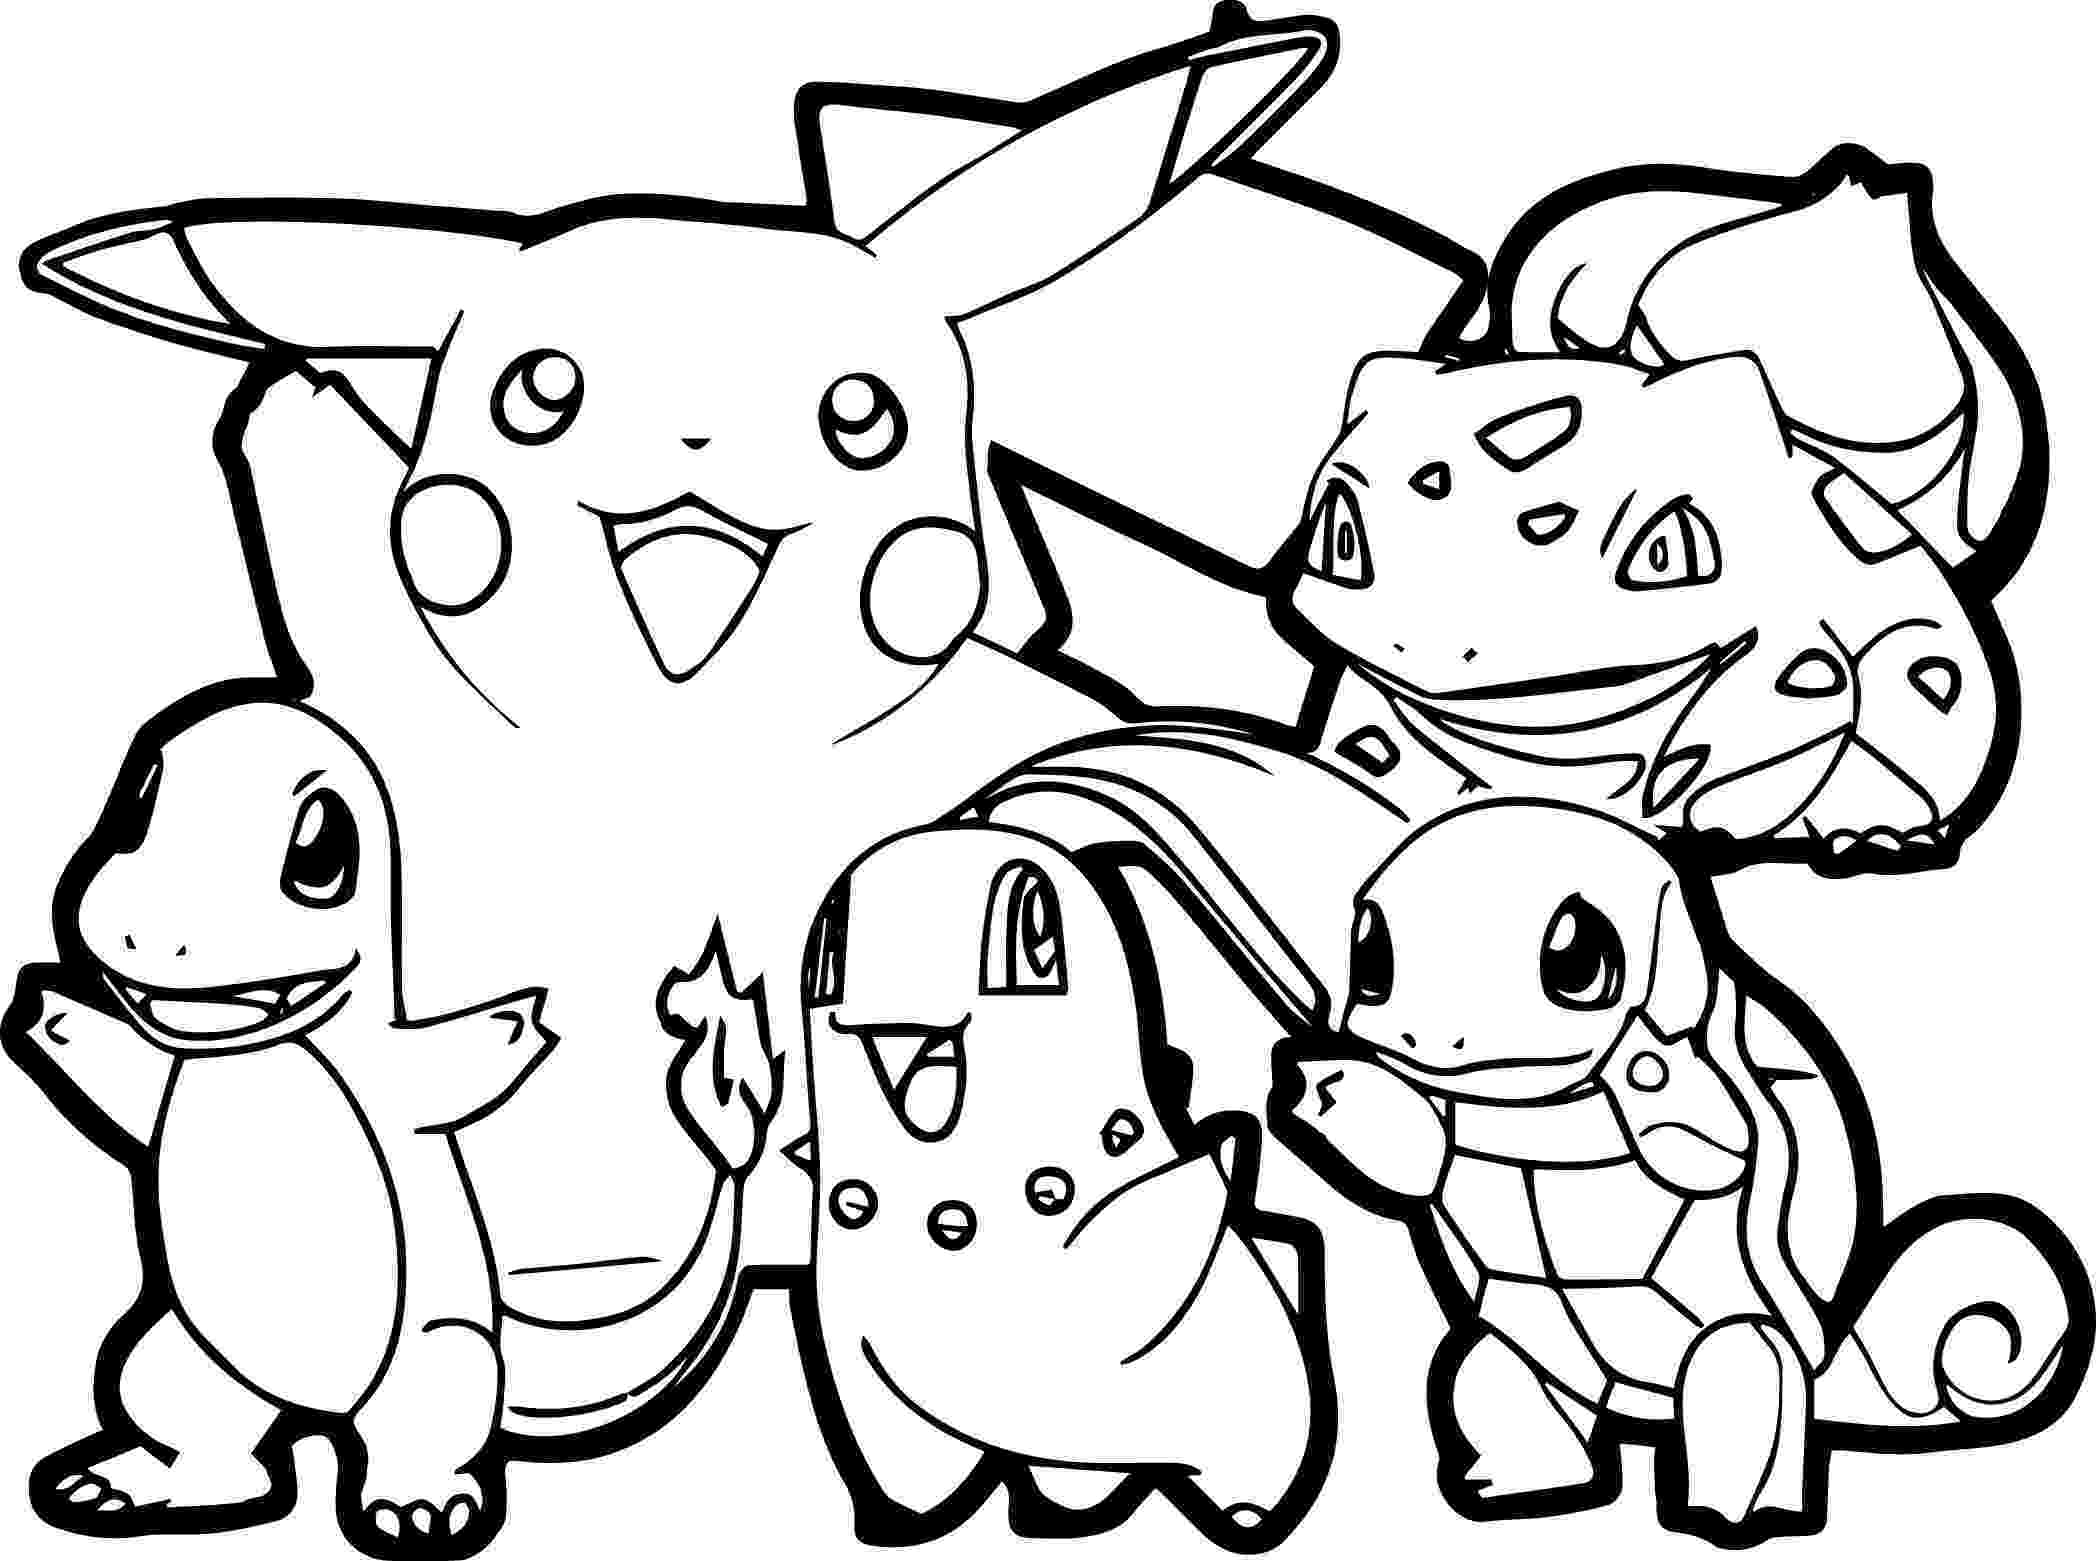 pokemon to color pokemon for children all pokemon coloring pages kids to pokemon color